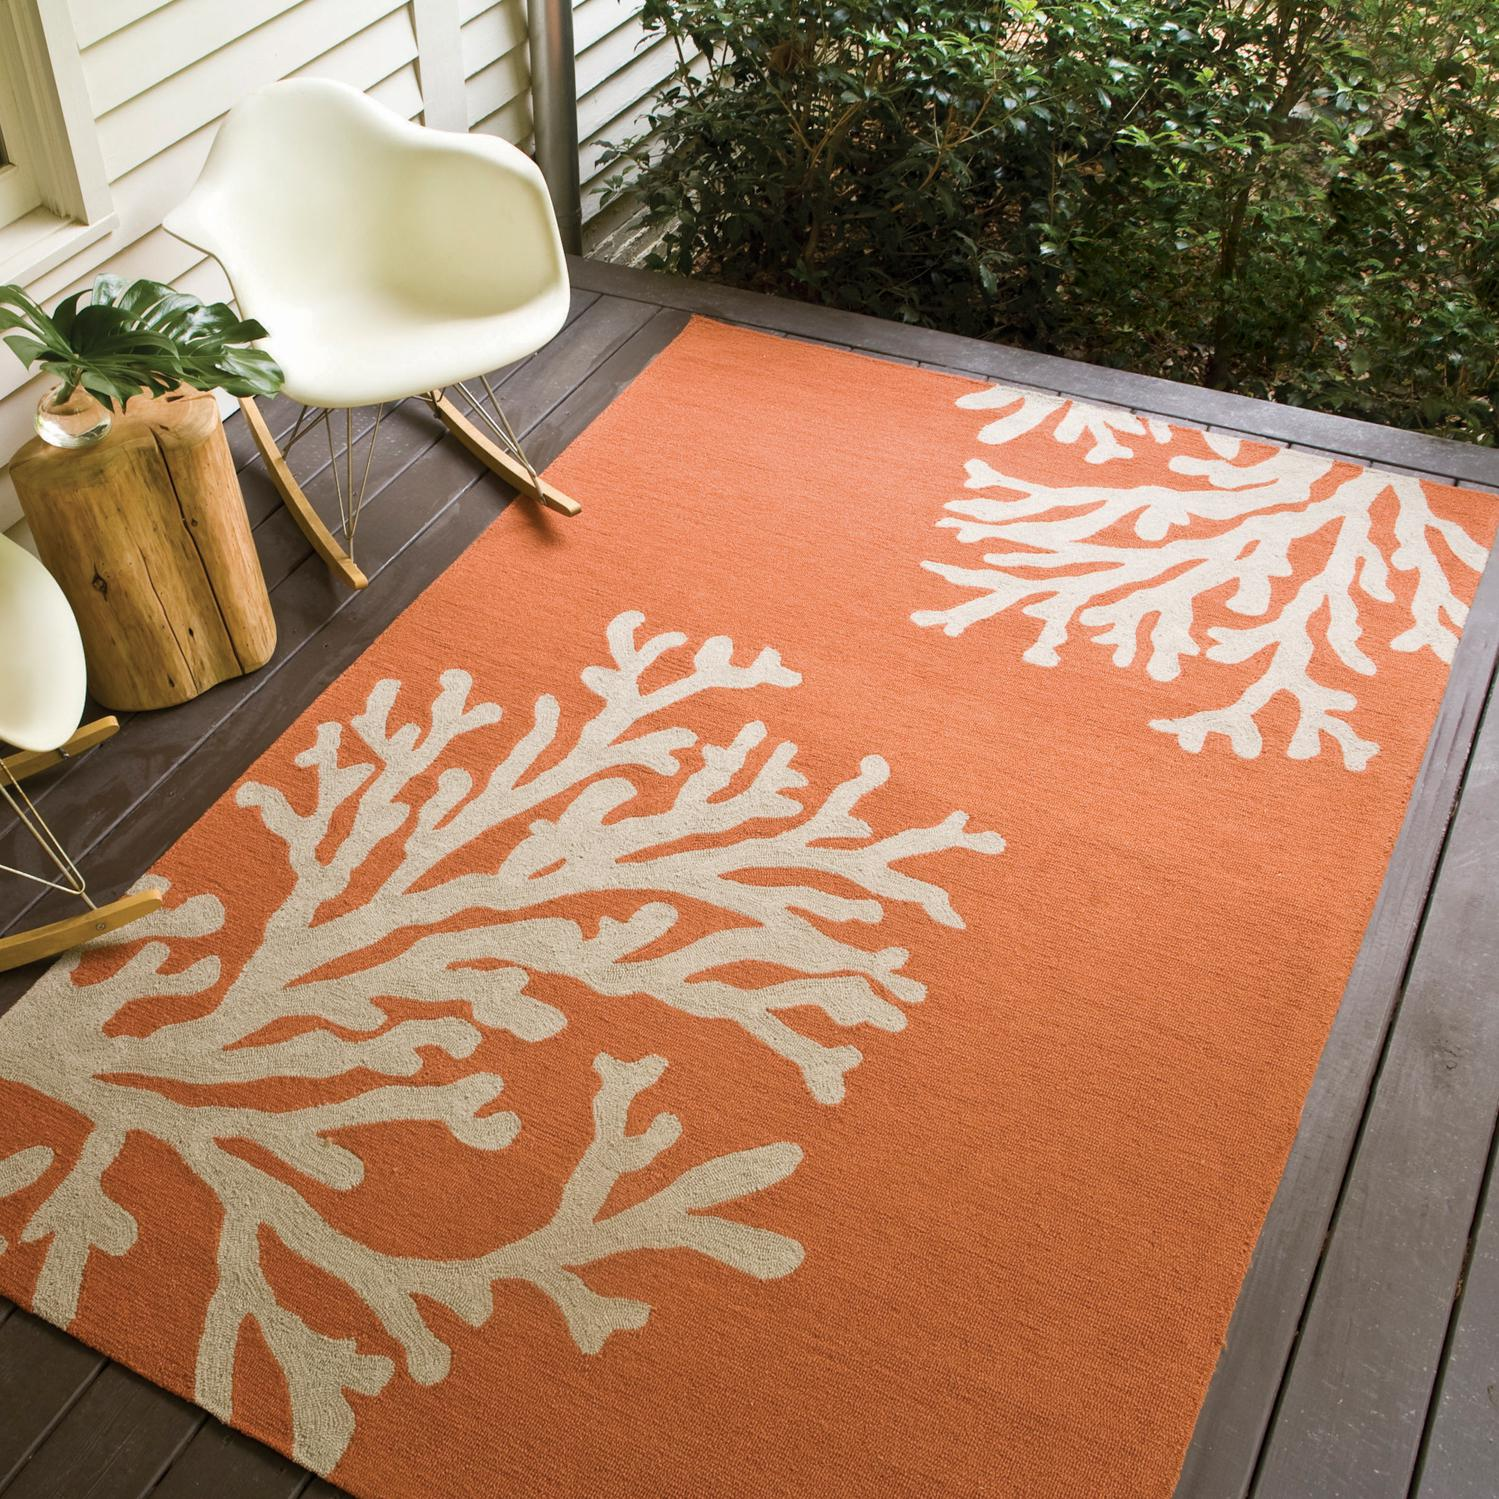 Breathtaking indoor outdoor carpet for home decor ideas with home depot indoor outdoor carpet